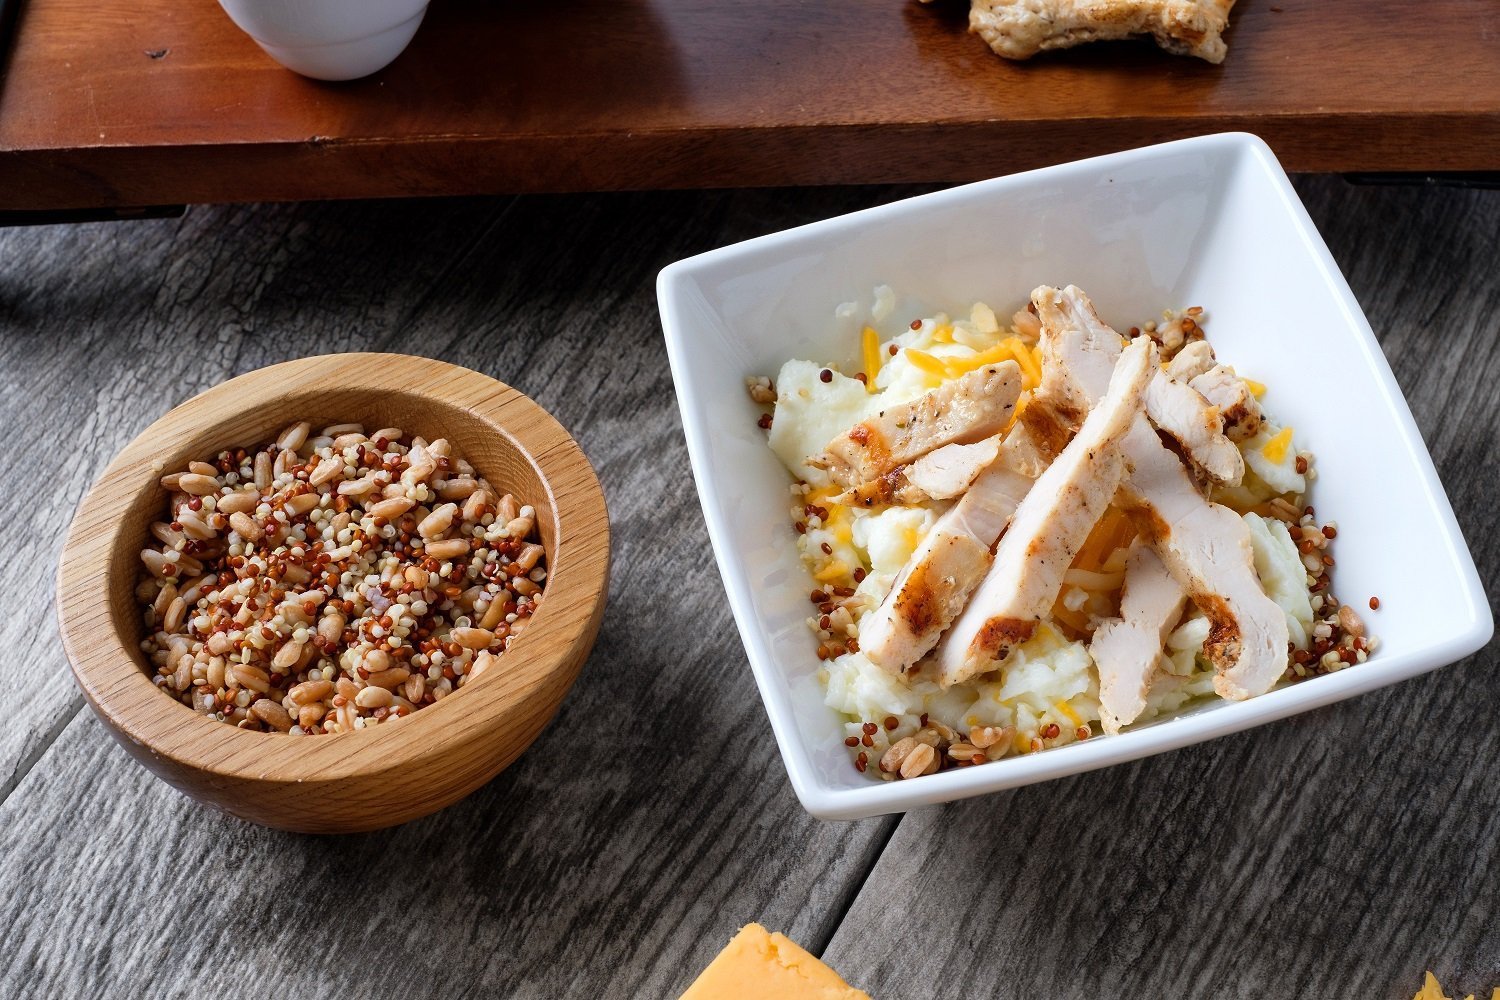 Chick Fil A Healthy Breakfast  Chick fil A adds new healthy grain bowls Business Insider